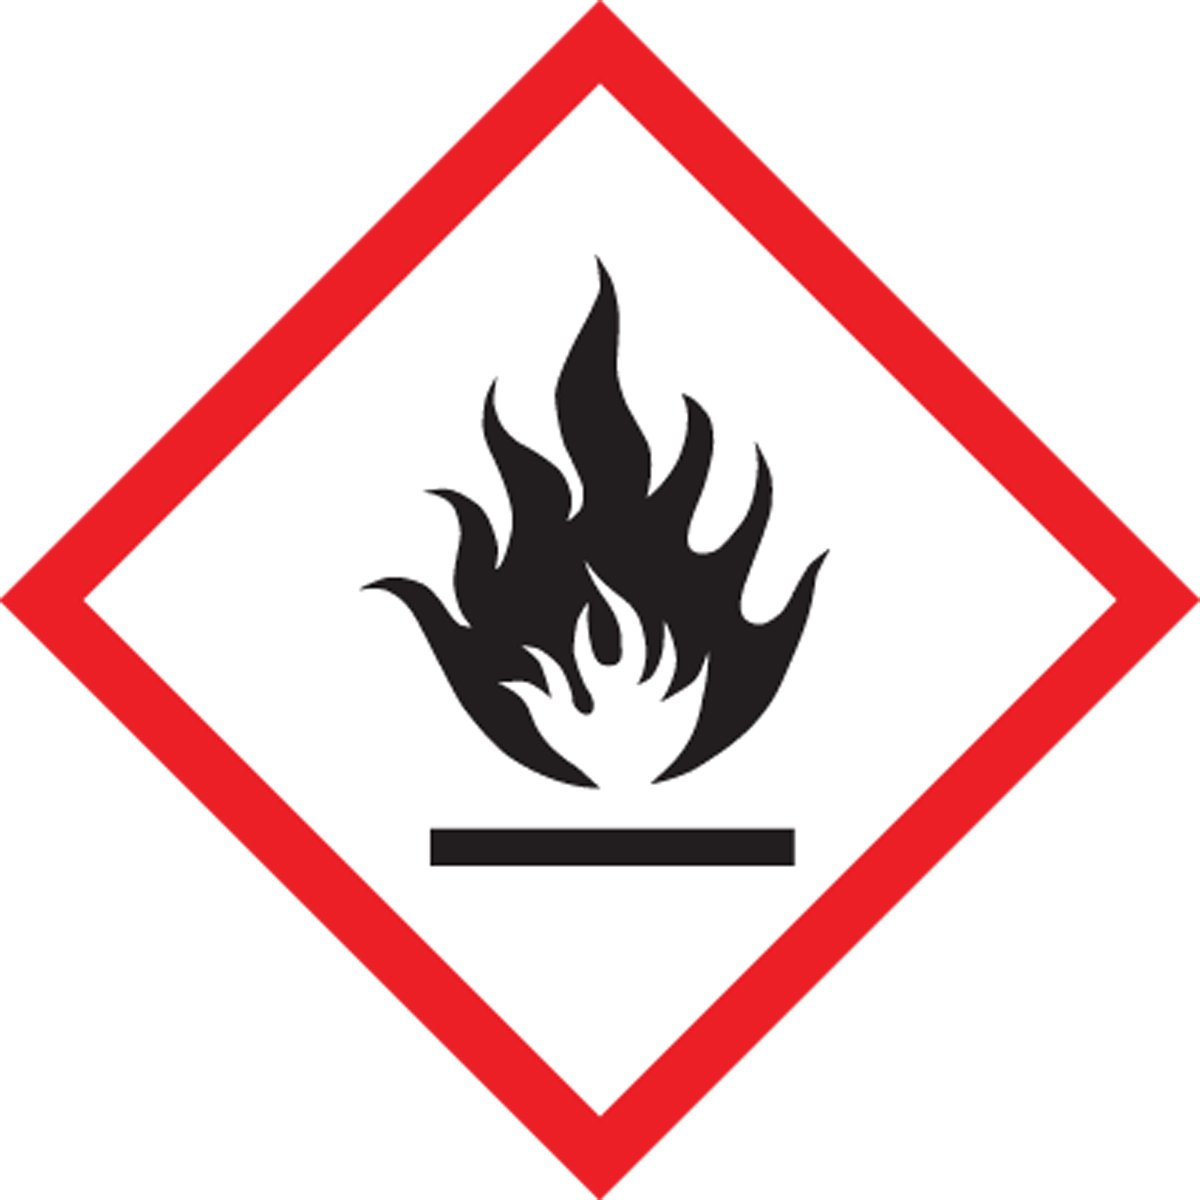 "Accuform LZH611EV2 GHS Label, FLAME Pictogram, 2"" x 2"", Adhesive Poly Sheet, 250/Roll (Pack of 250)"